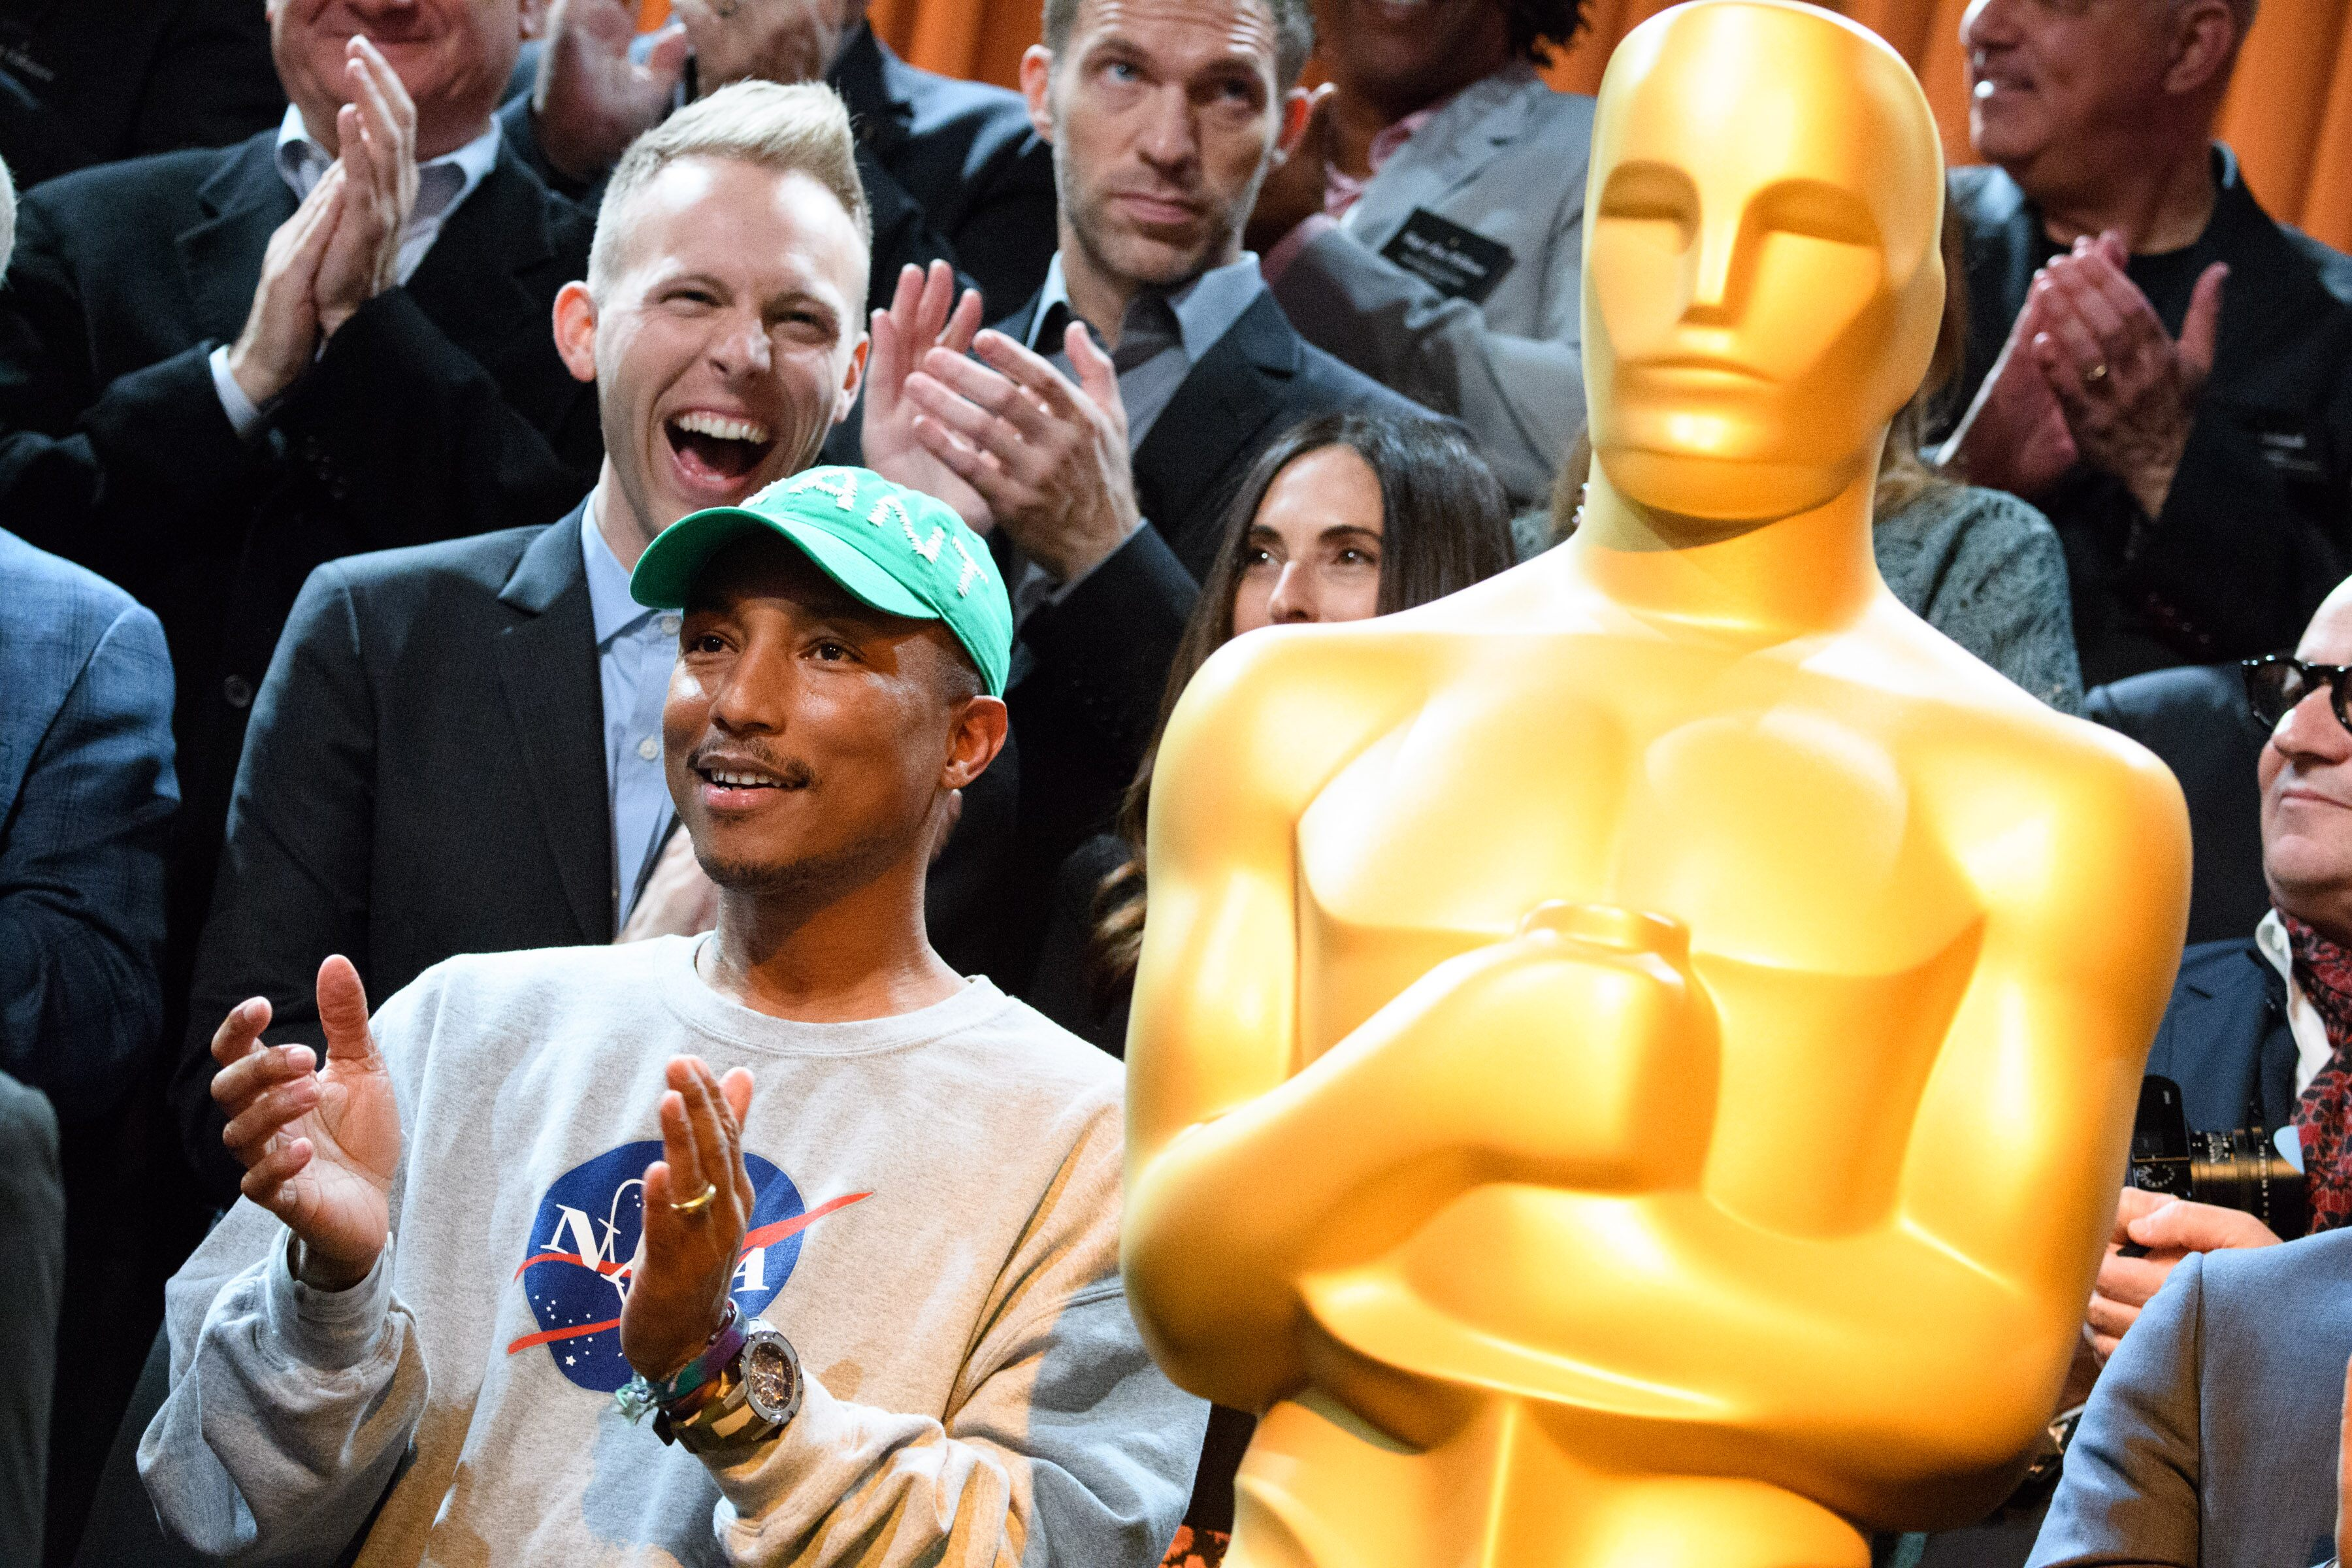 Oscar nominee Pharrell Williams